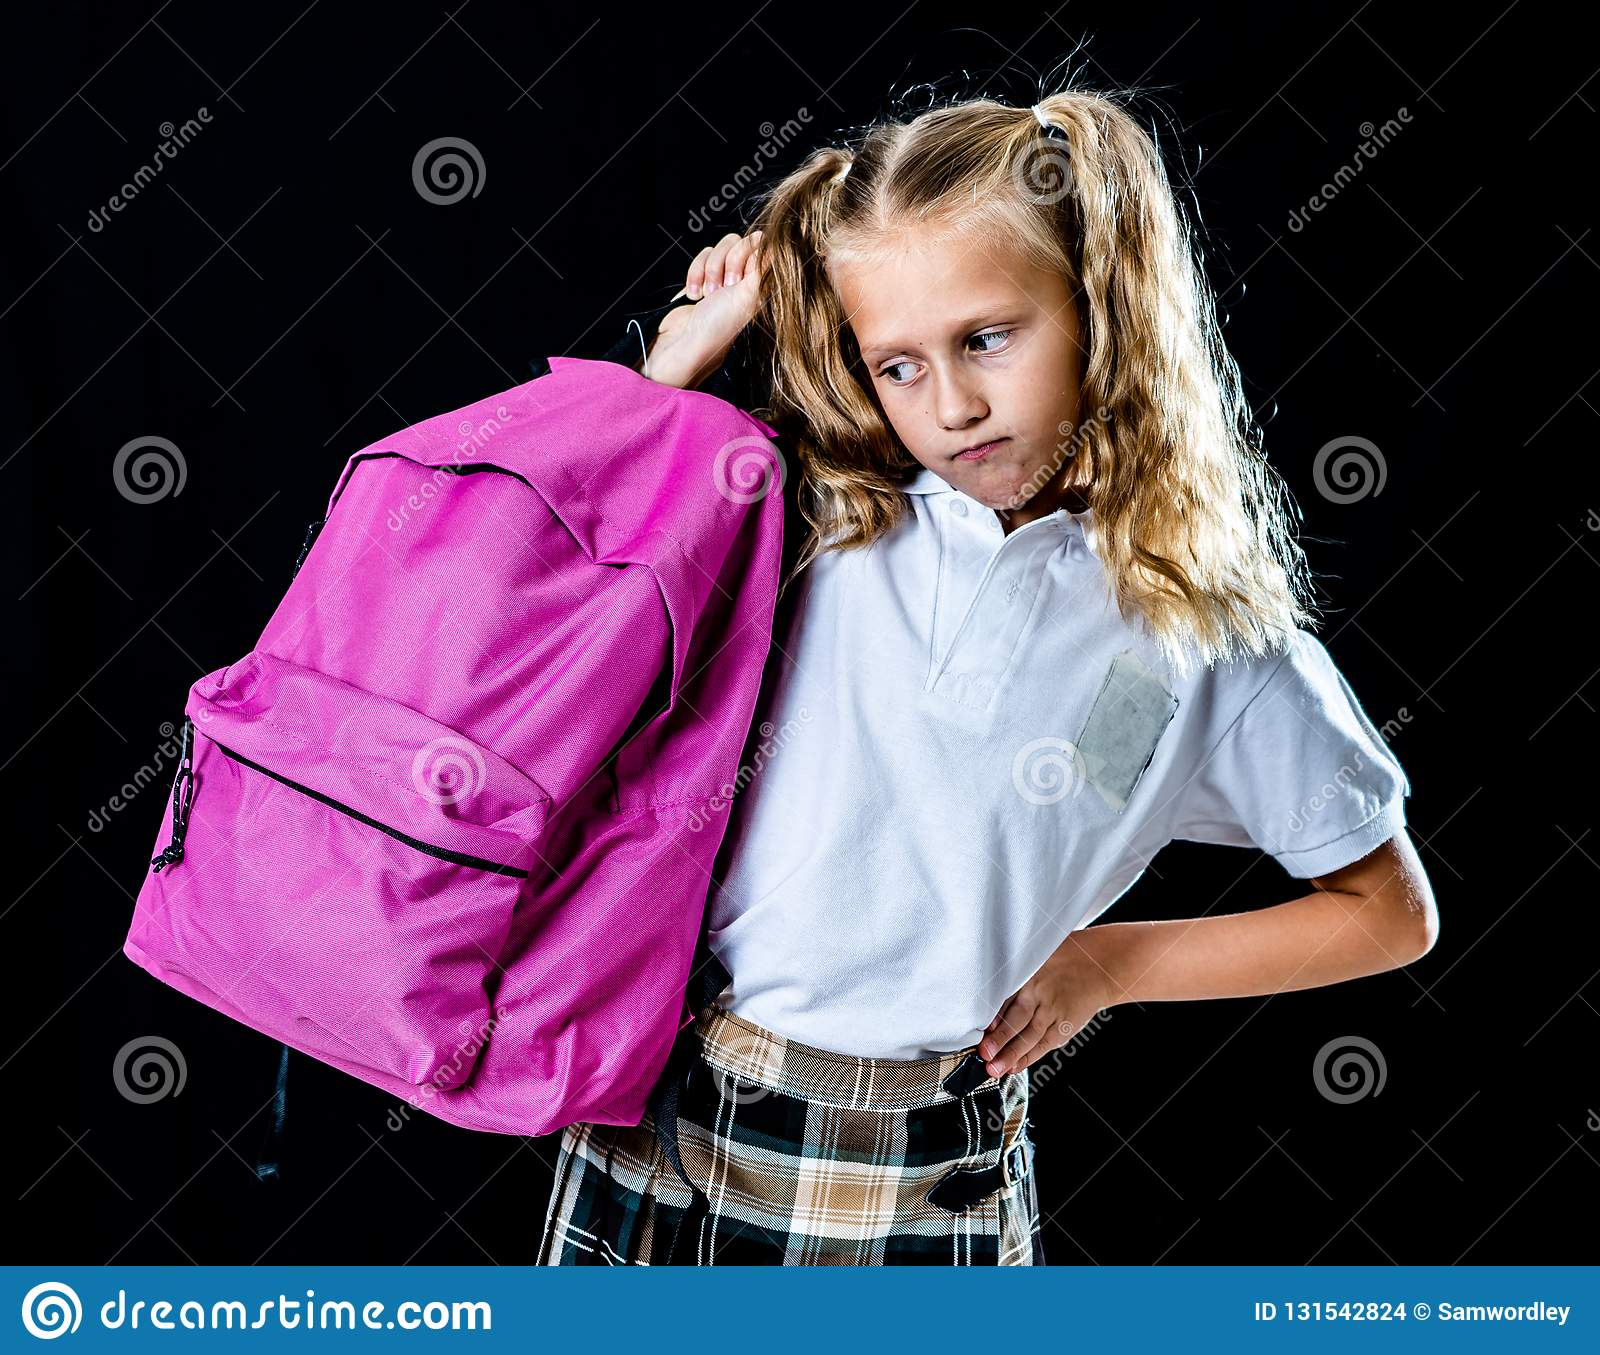 Sweet beautiful little girl in school uniform feeling angry and frustrated looking at the camera isolated on black background in